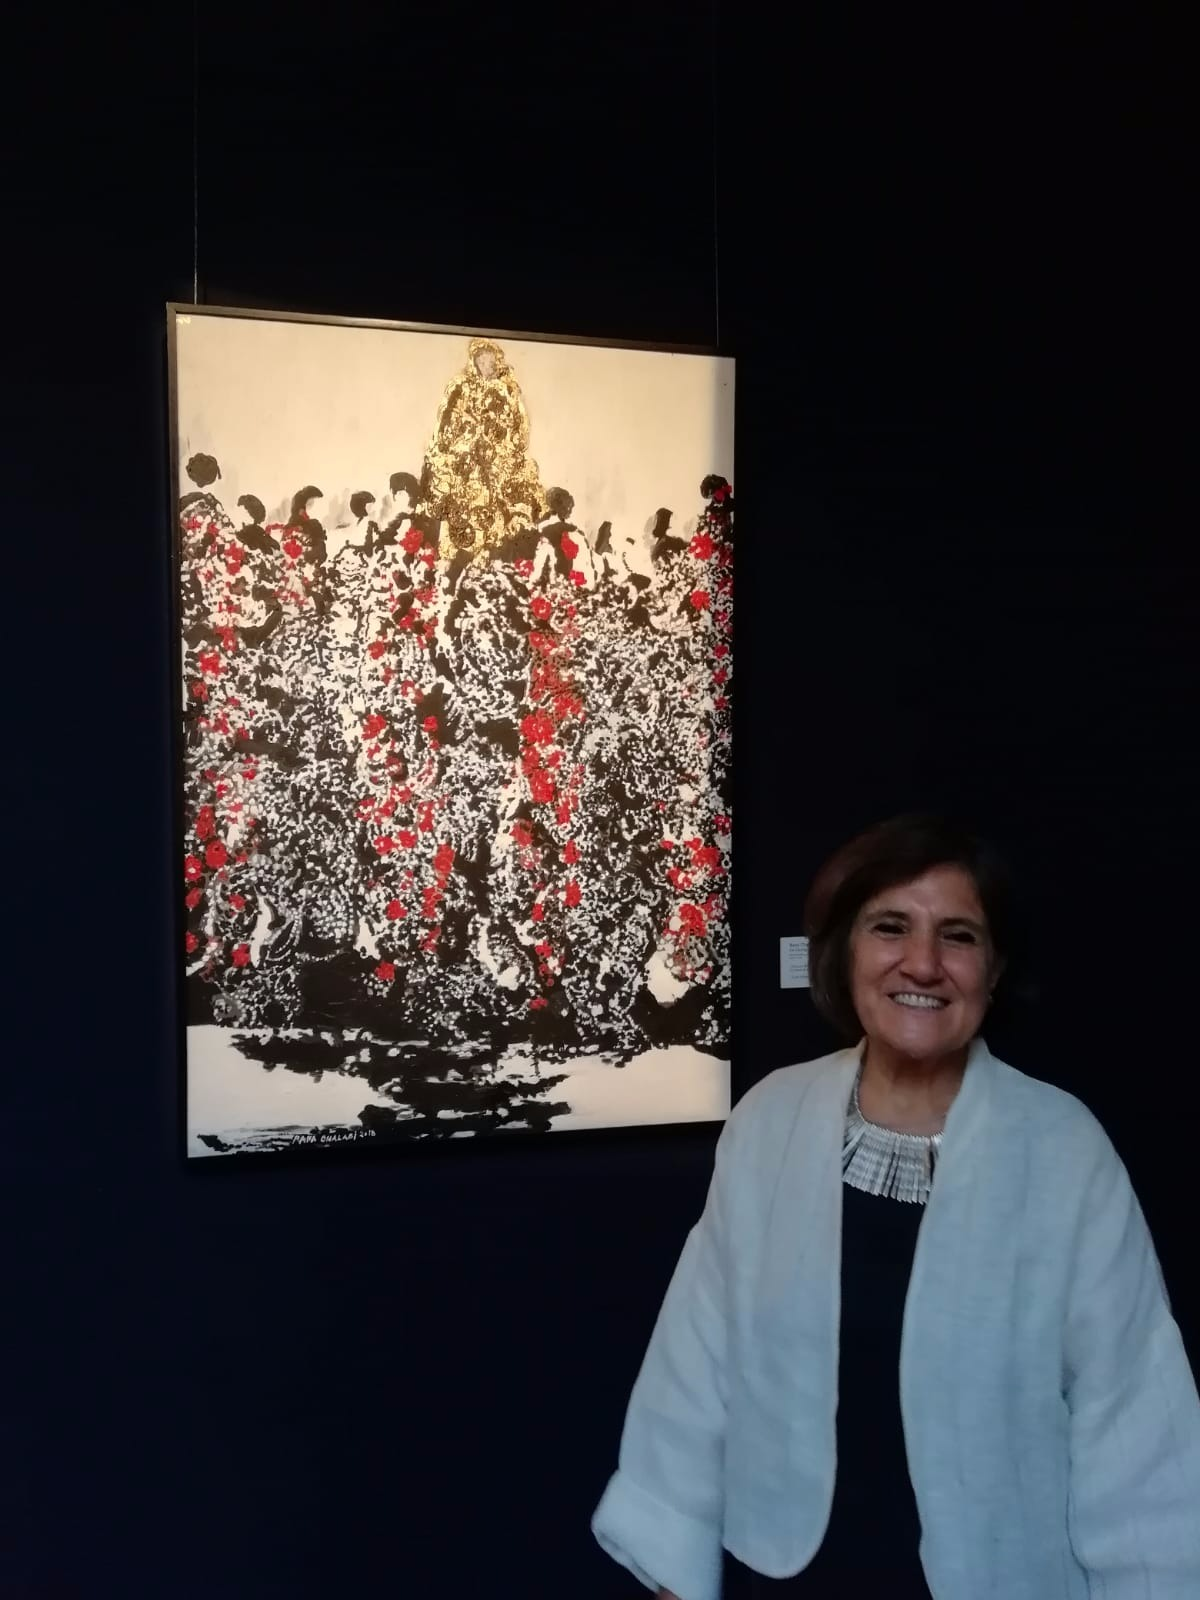 On Giving  Mixed Media on Canvas  105 X 71  Exhibited and sold on first day of opening at Sotheby's, London, August 8th, 2018